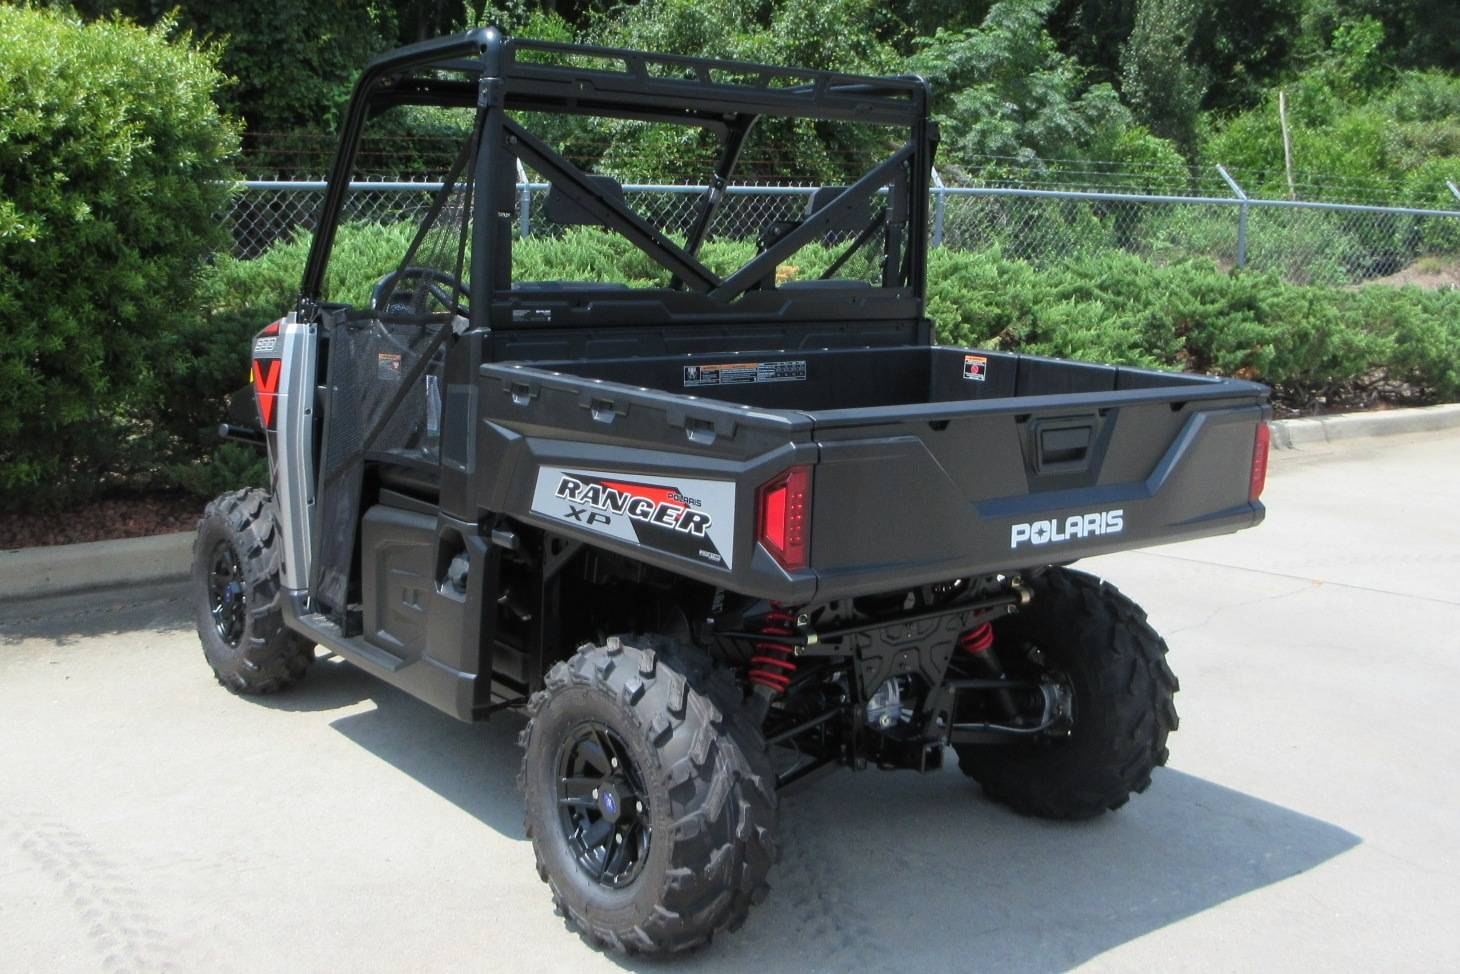 2019 Polaris Ranger XP 900 EPS in Sumter, South Carolina - Photo 8